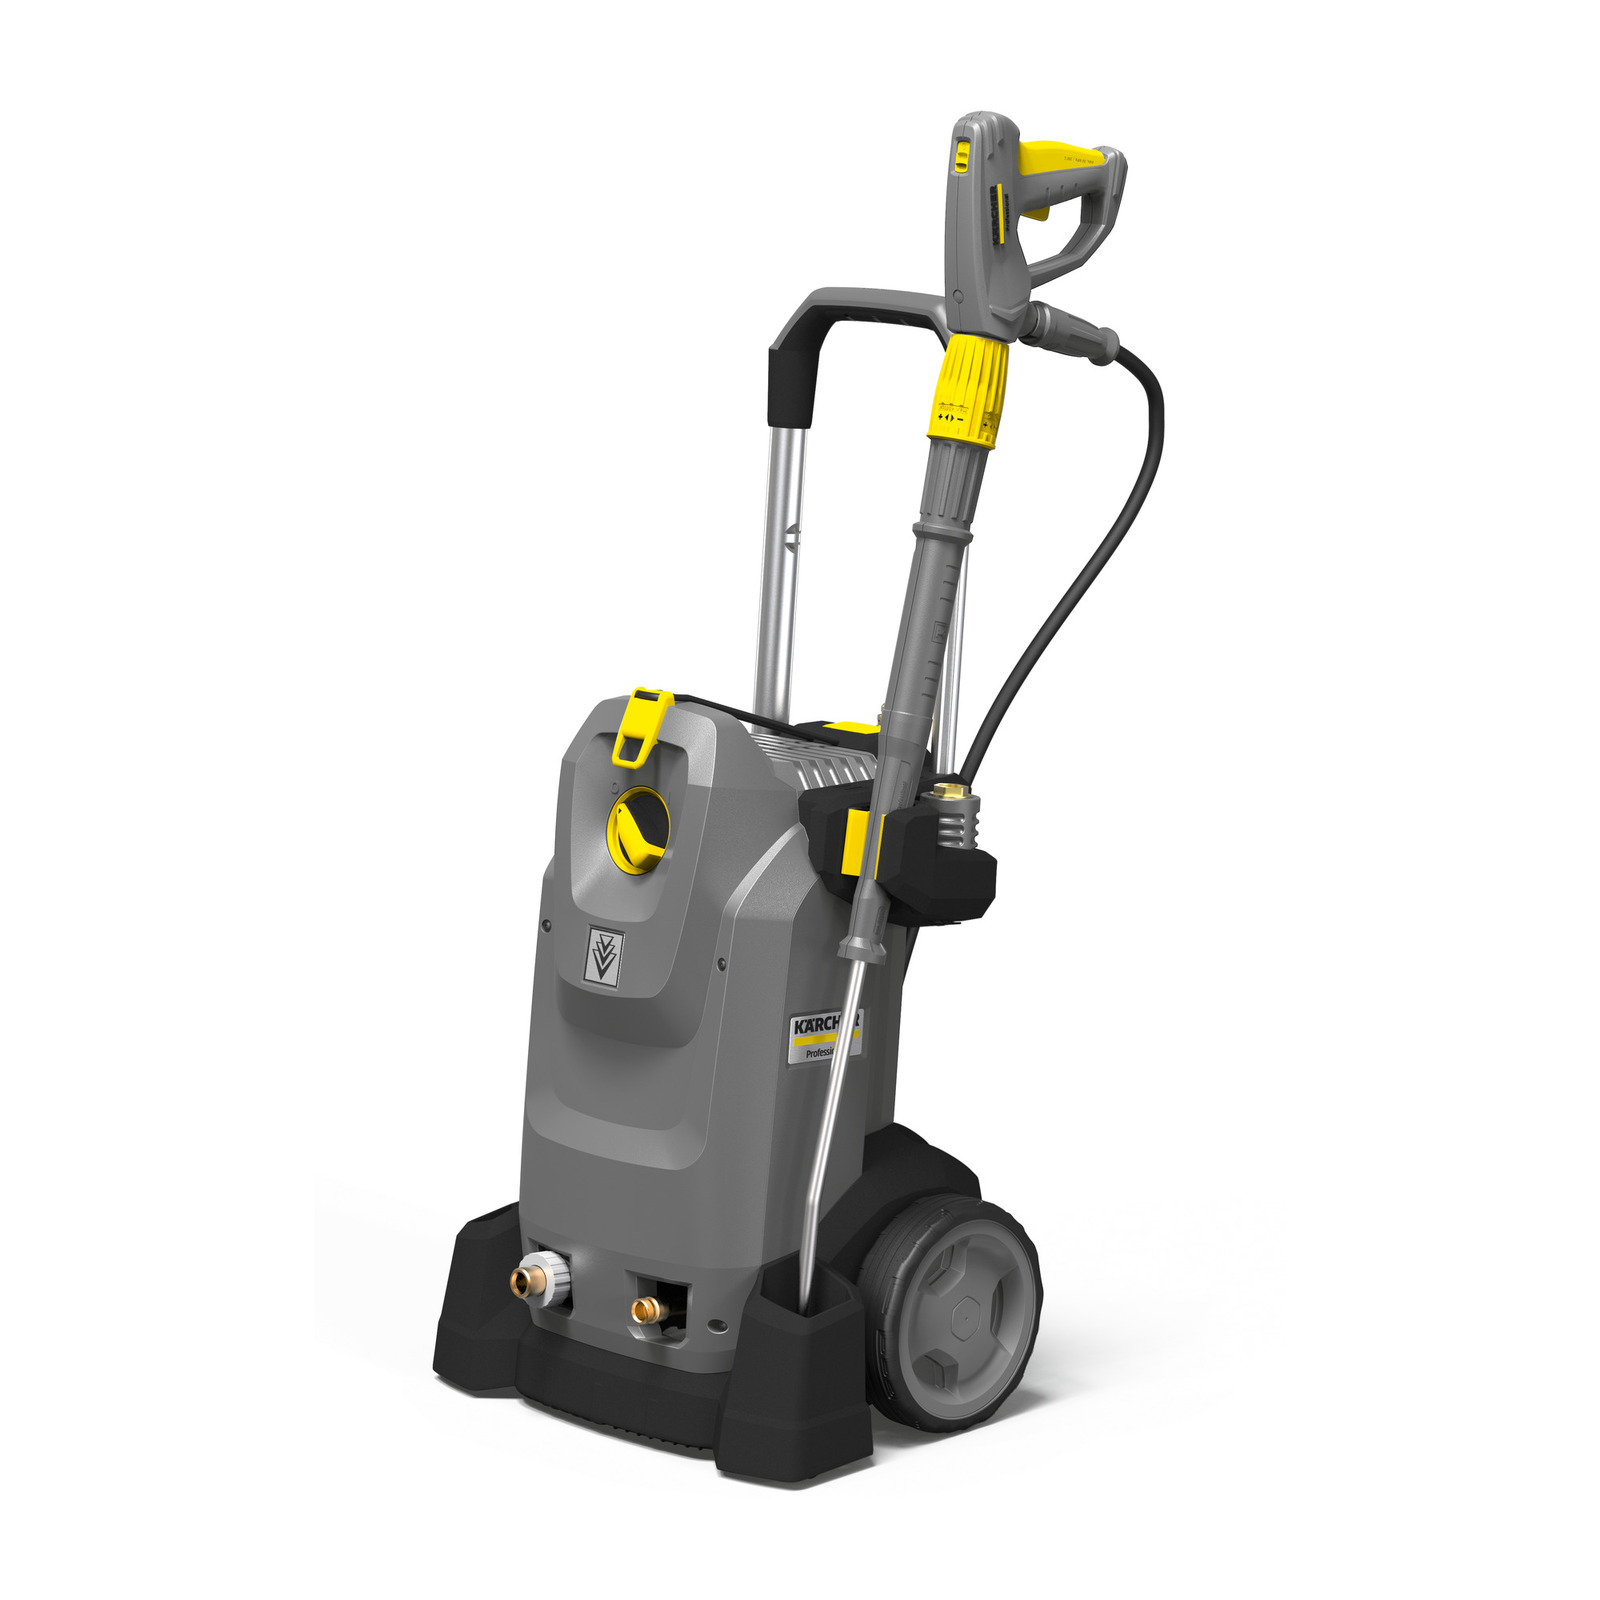 KARCHER - HD 7/16-4 MX Plus